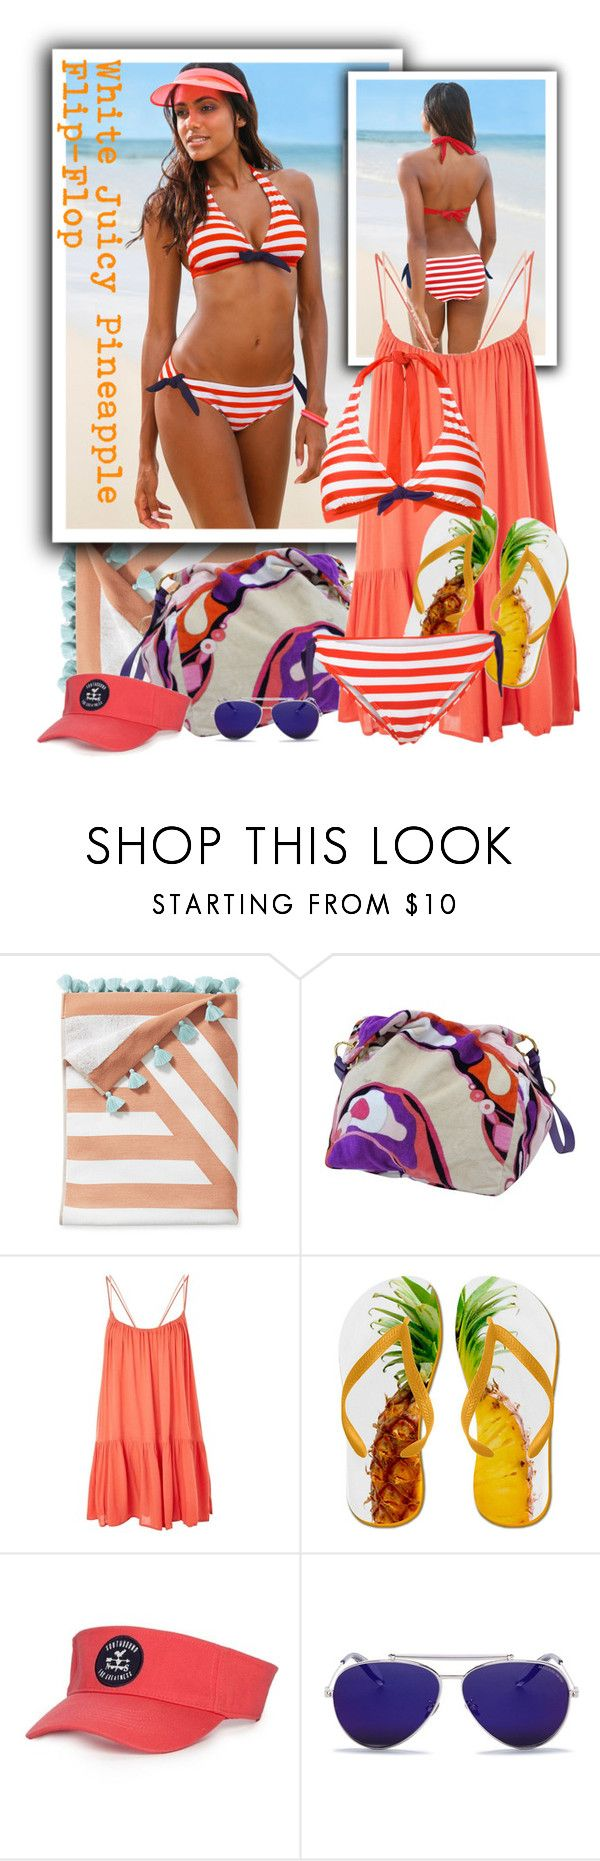 """""""Emilio Pucci Beach Tote"""" by tasha1973 ❤ liked on Polyvore featuring Serena & Lily, Emilio Pucci, Topshop and Alexander McQueen"""